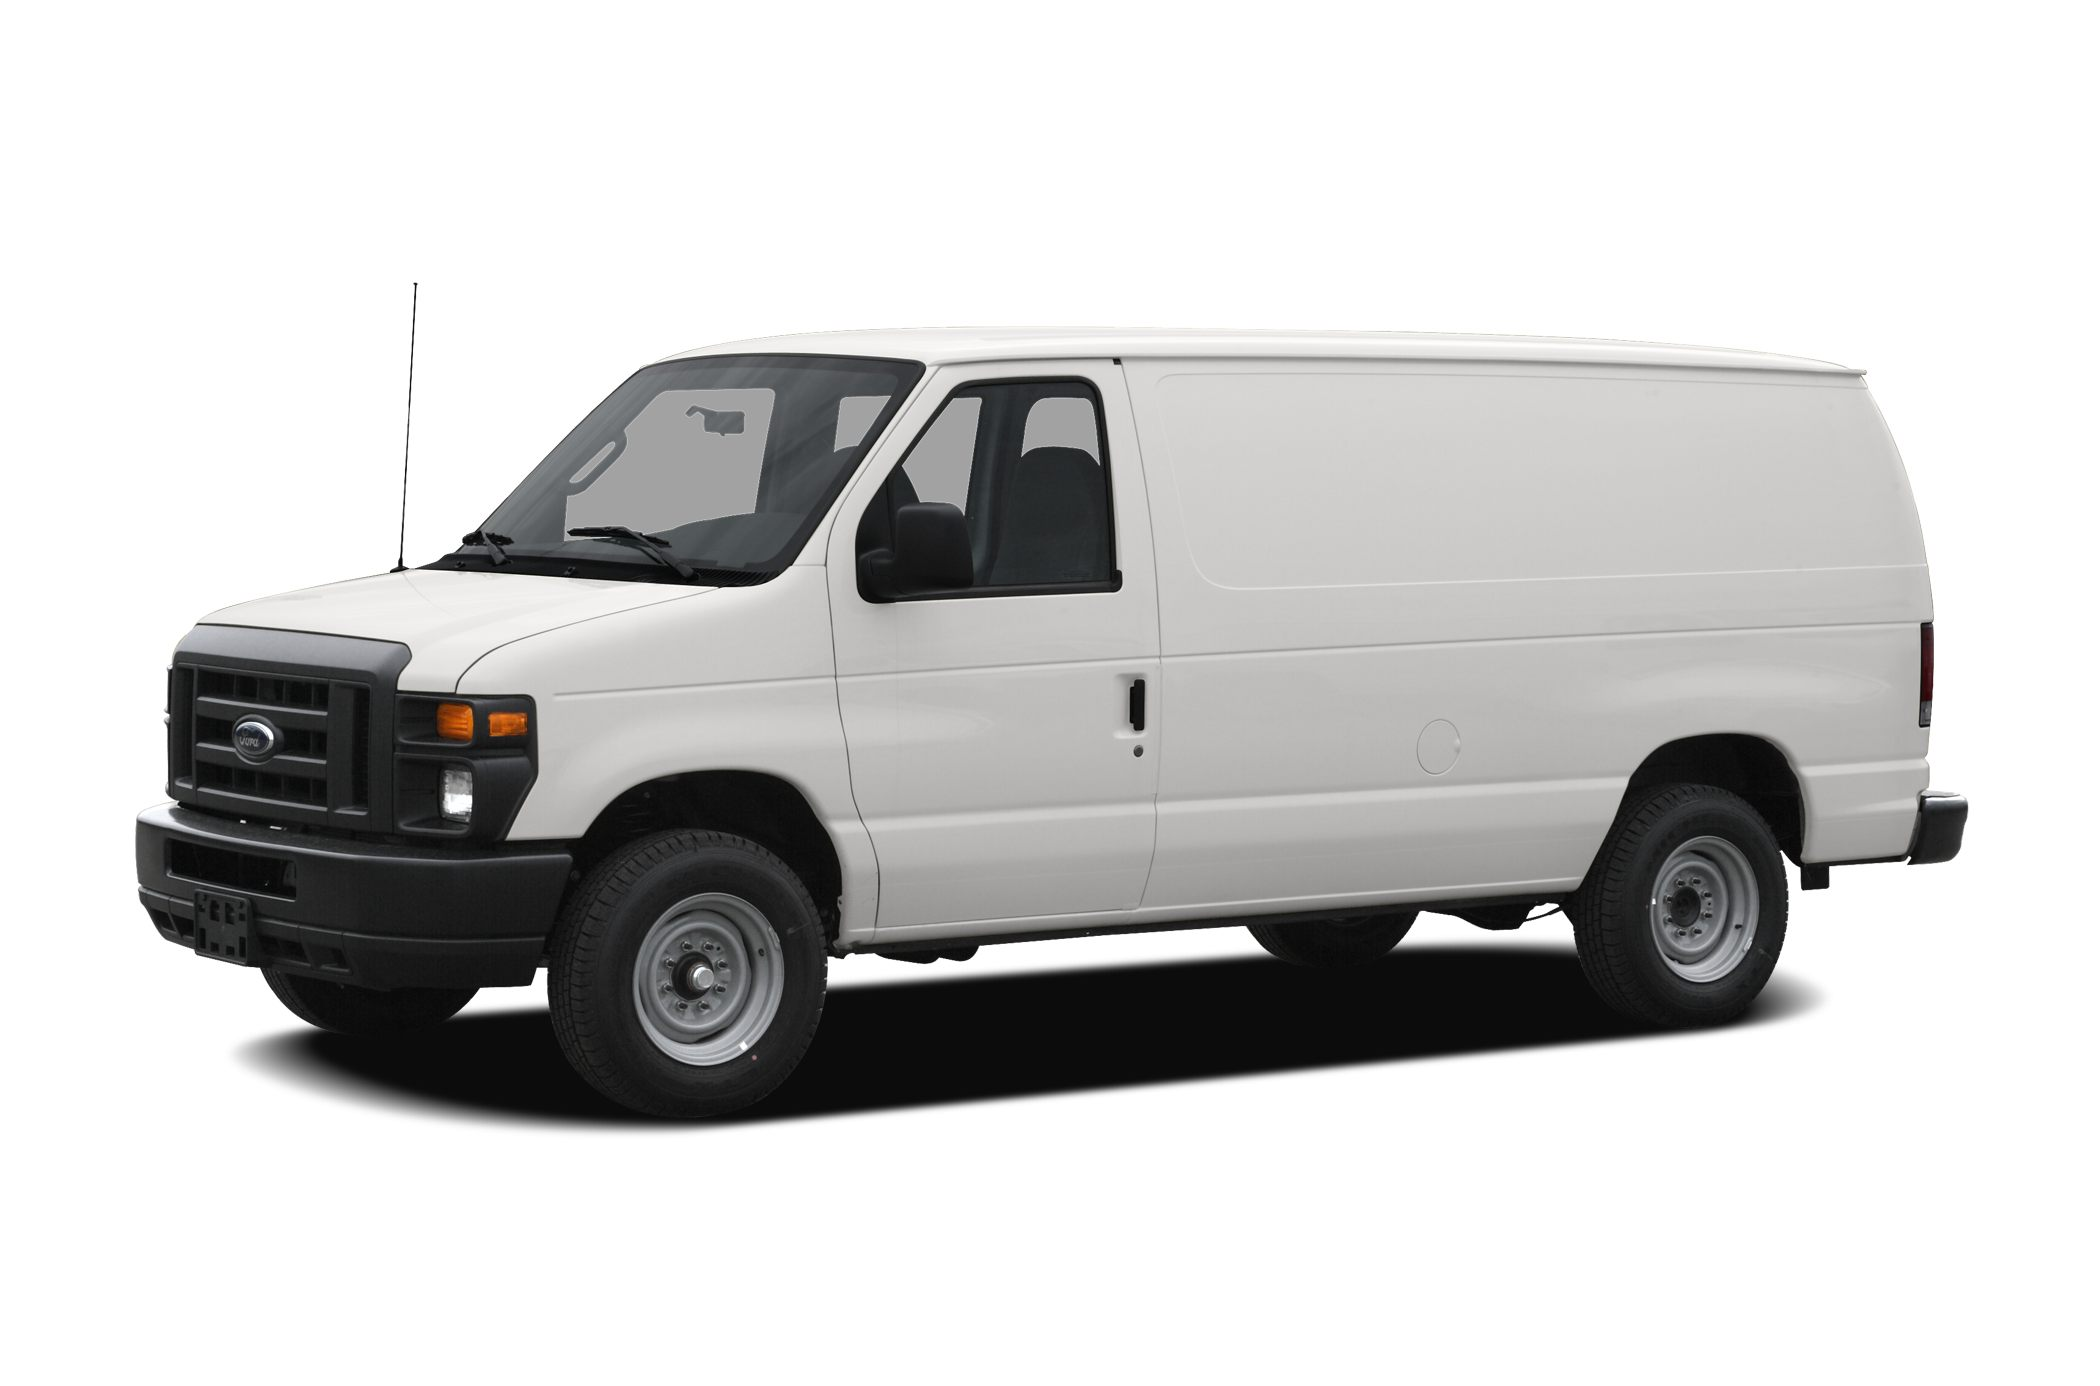 2008 Ford E250 Cargo Van for sale in Charleston for $8,575 with 175,773 miles.